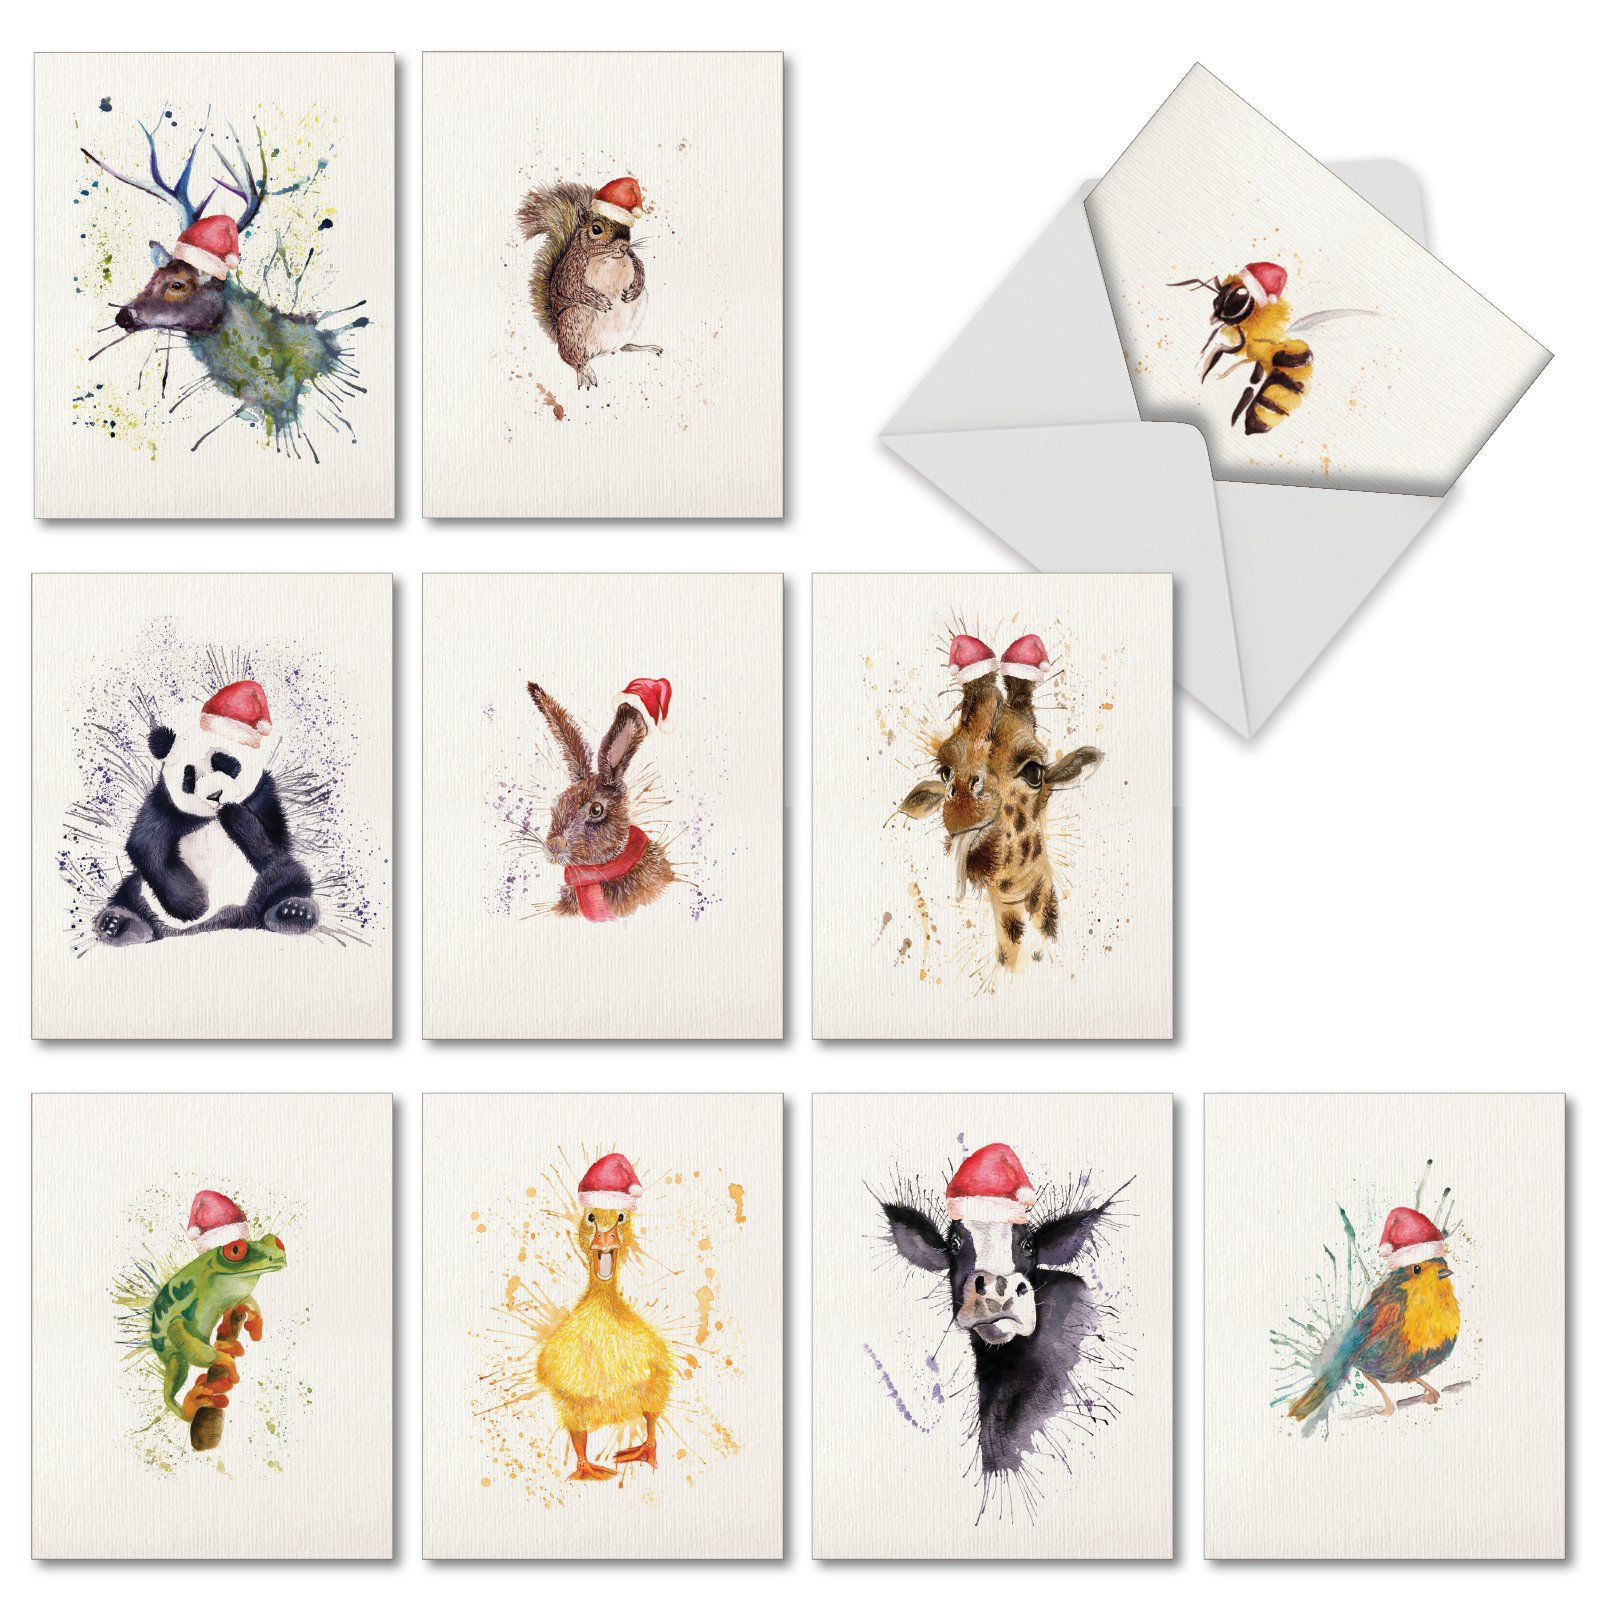 The Best Card Company - 10 Wildlife Expressions Christmas Cards (4 x 5.12 Inch) - Assortment of Boxed Watercolor Animal Cards w/Envelopes M2973XSG